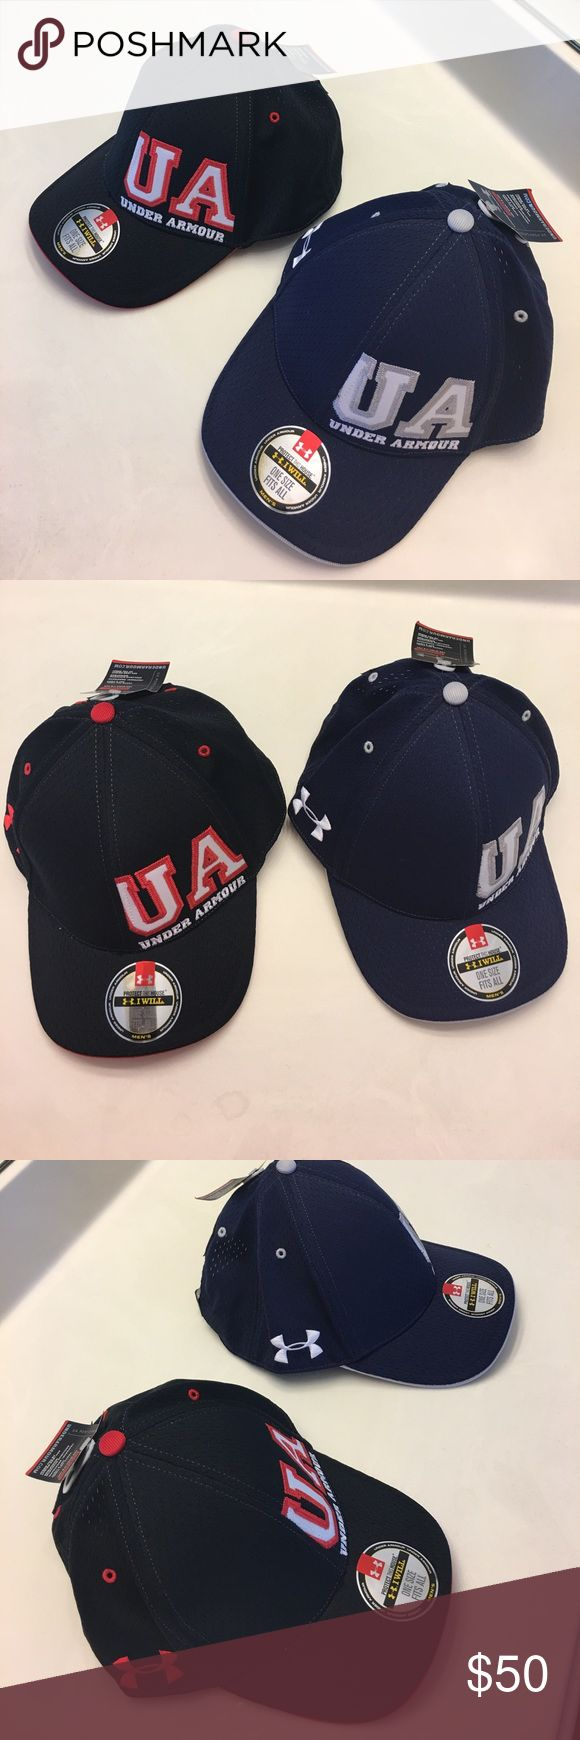 2 Under Armour UA Varsity Cap Gap Get in the game in the Under Armour Men's Adjustable Varsity Cap. The cap is made of 100% polyester that looks like a real jersey, and it has authentic-looking locker tags, tackle twill and numbers and an UAS logo on the front a stylish look. Under Armour Accessories Hats